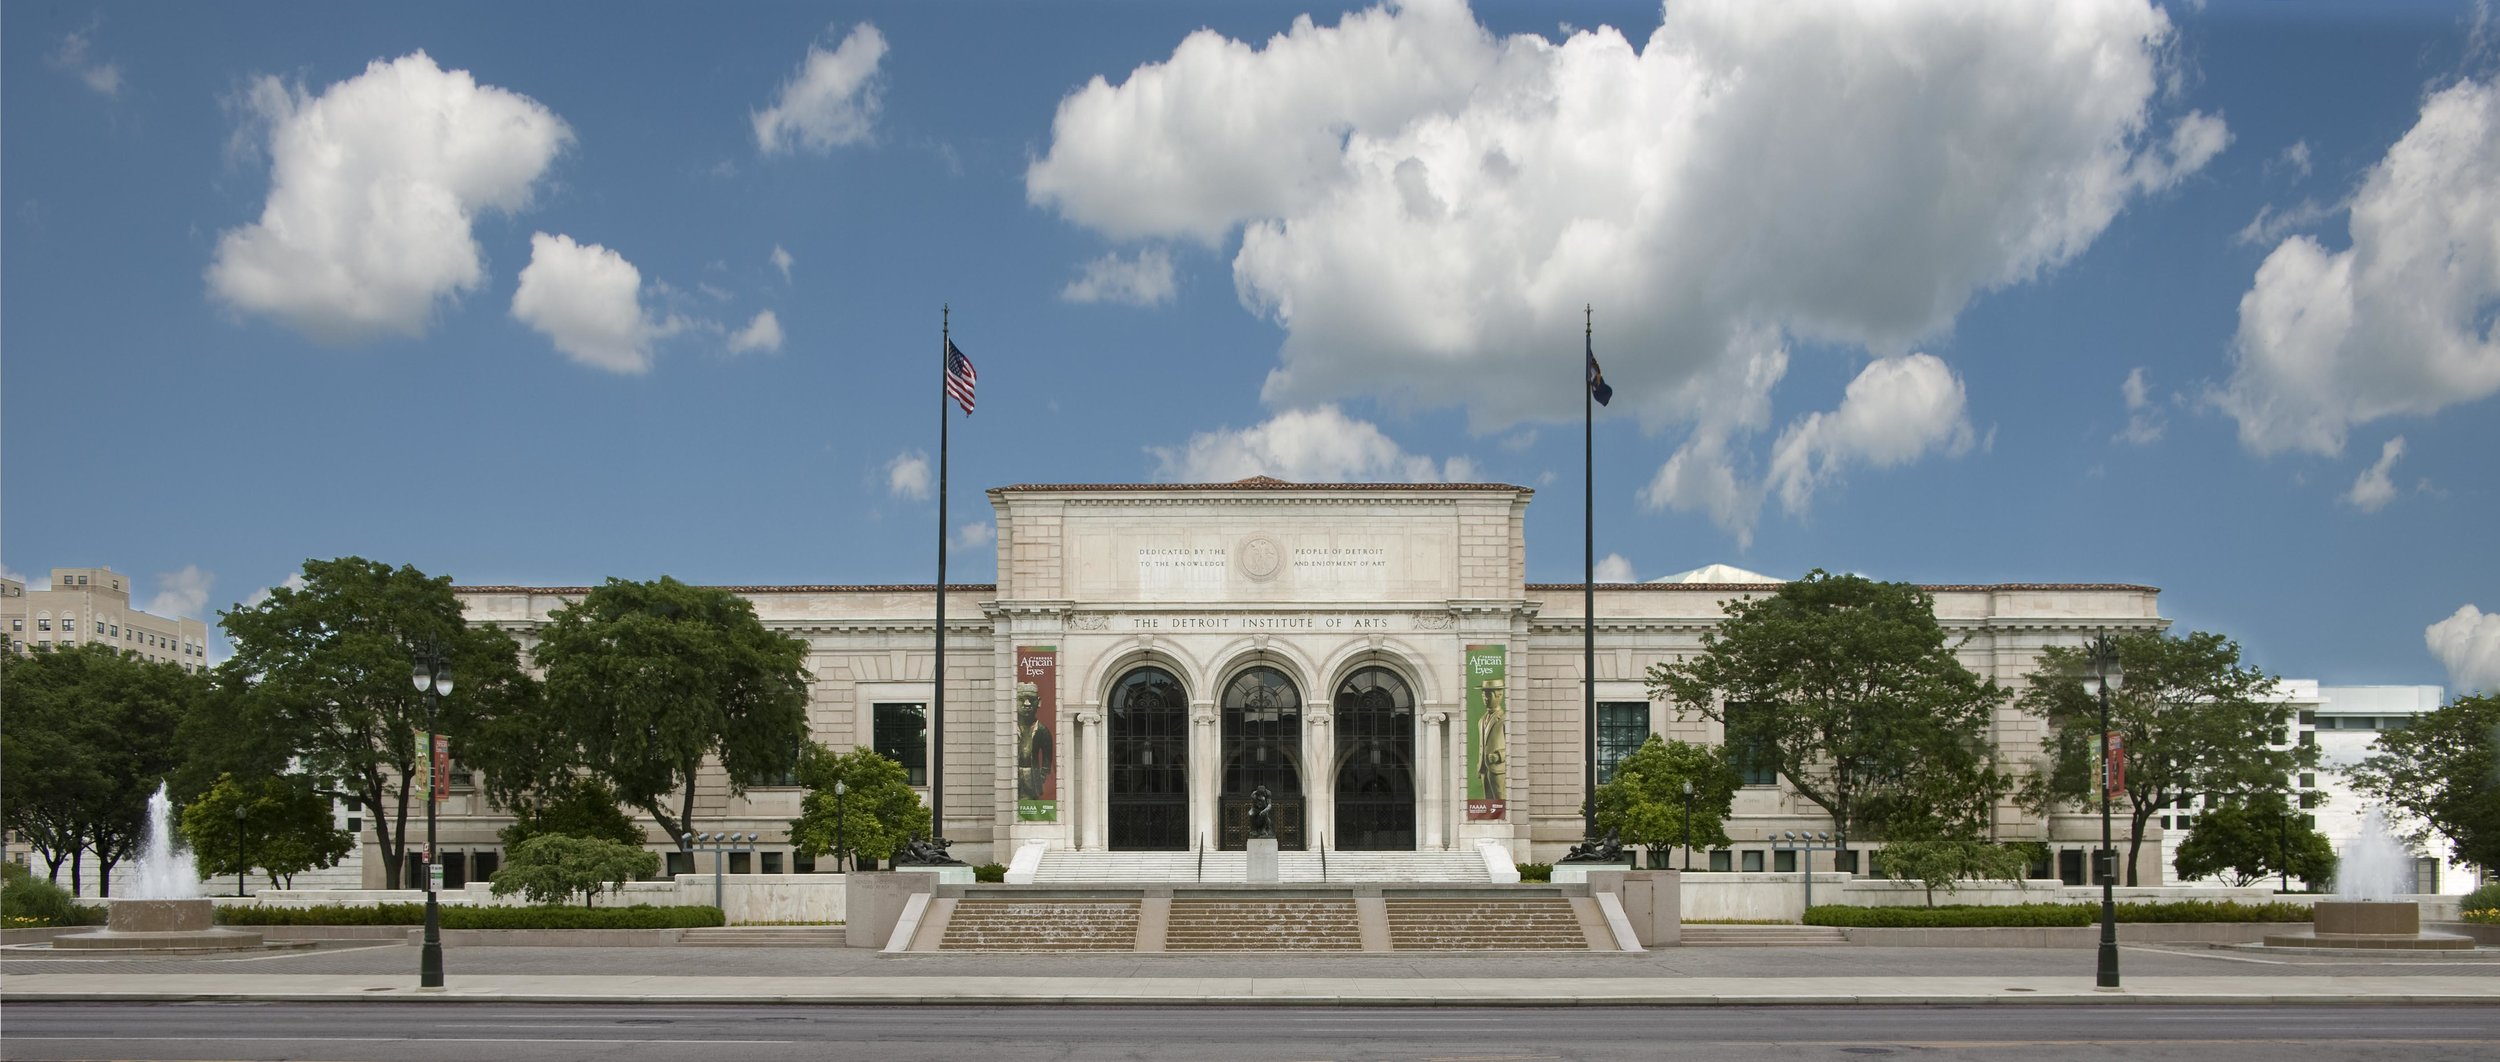 Detroit Institute of Arts | 5200 Woodward Avenue